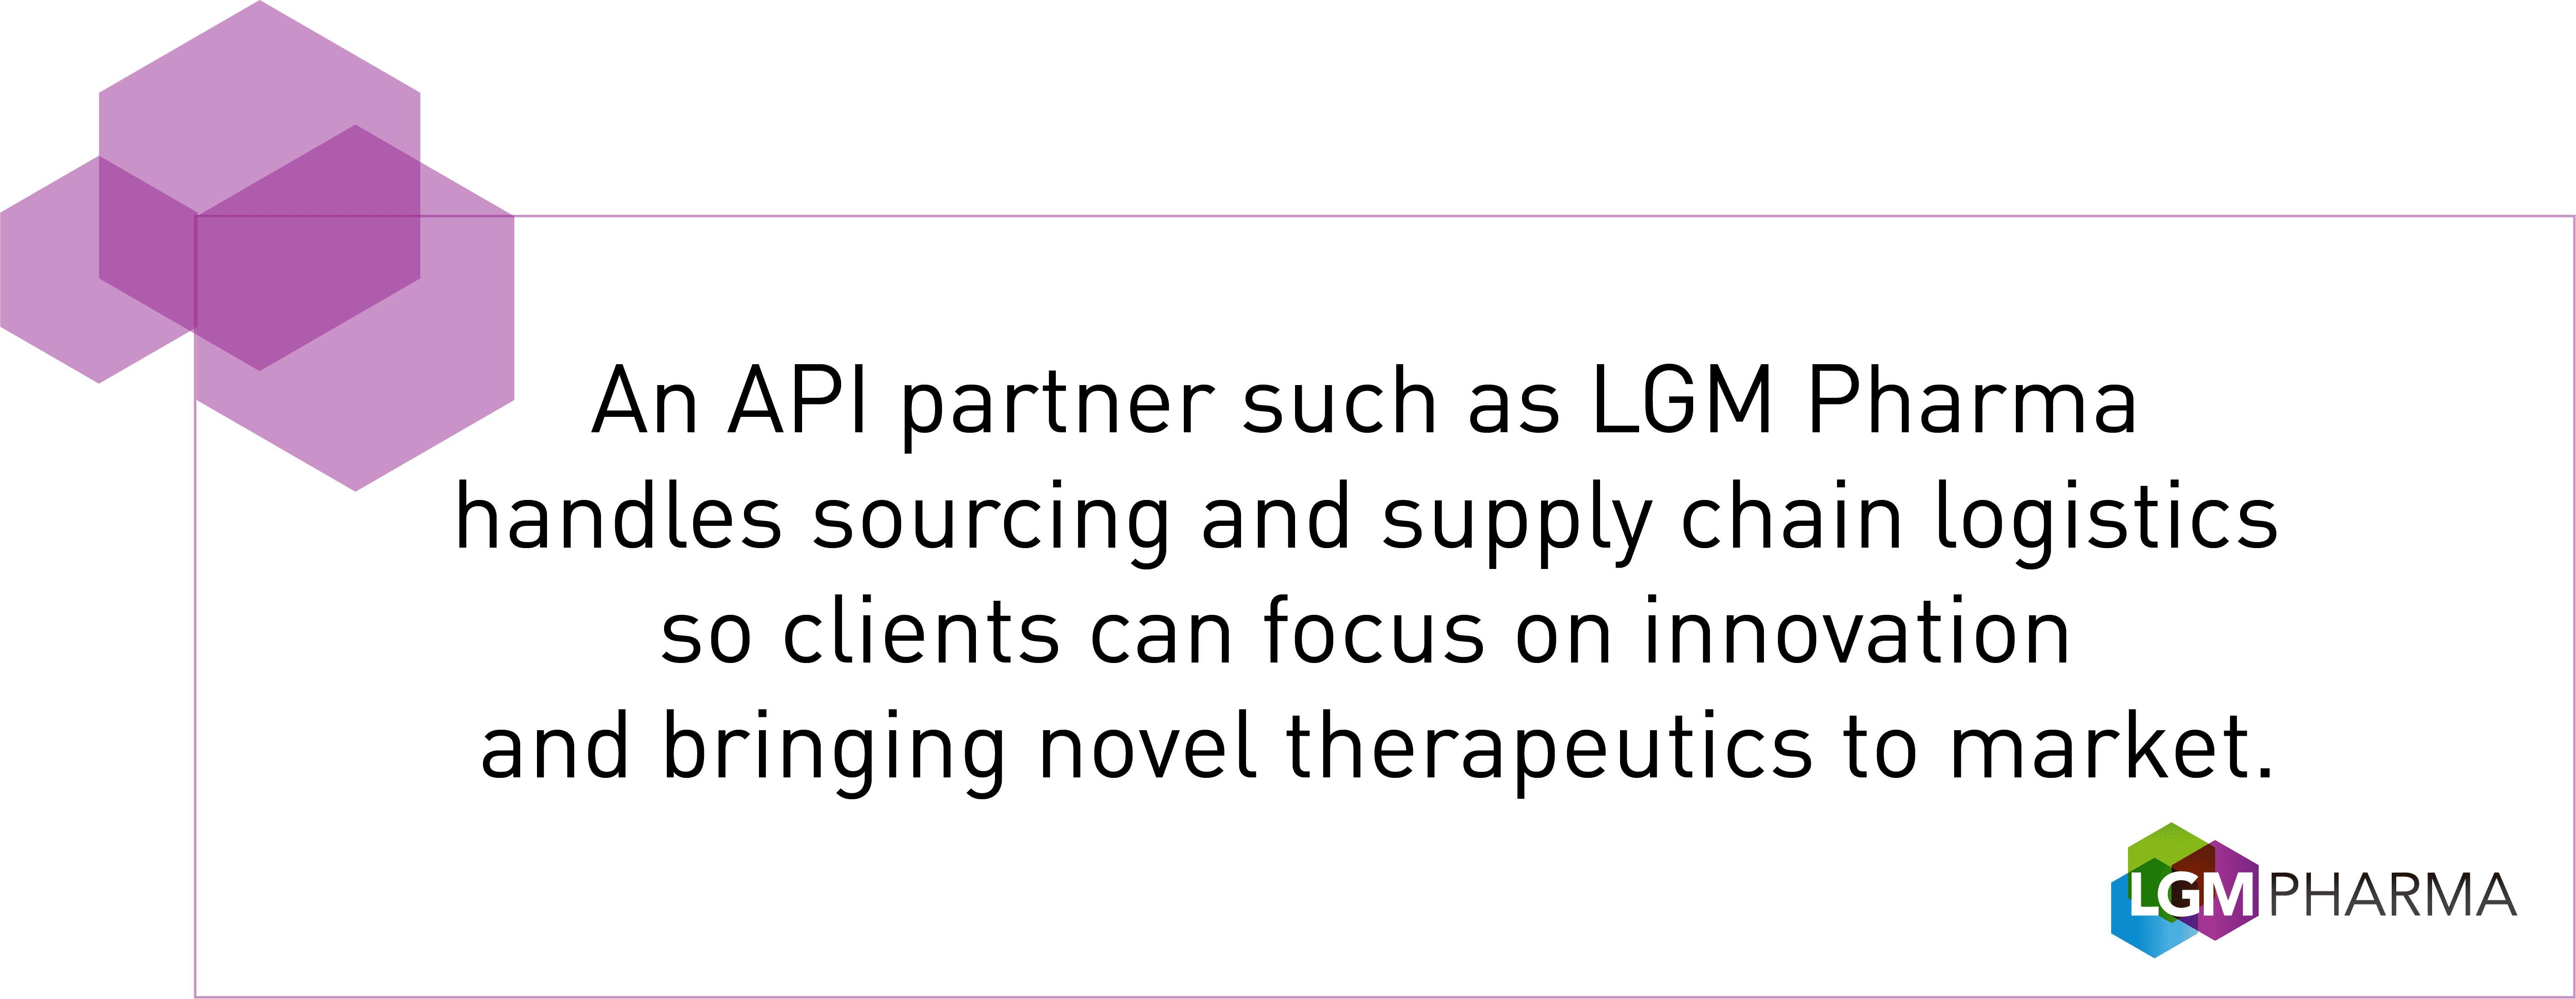 An API partner such as LGM Pharma handles sourcing and supply chain logistics so clients can focus on innovation and bringing novel therapeutics to market.